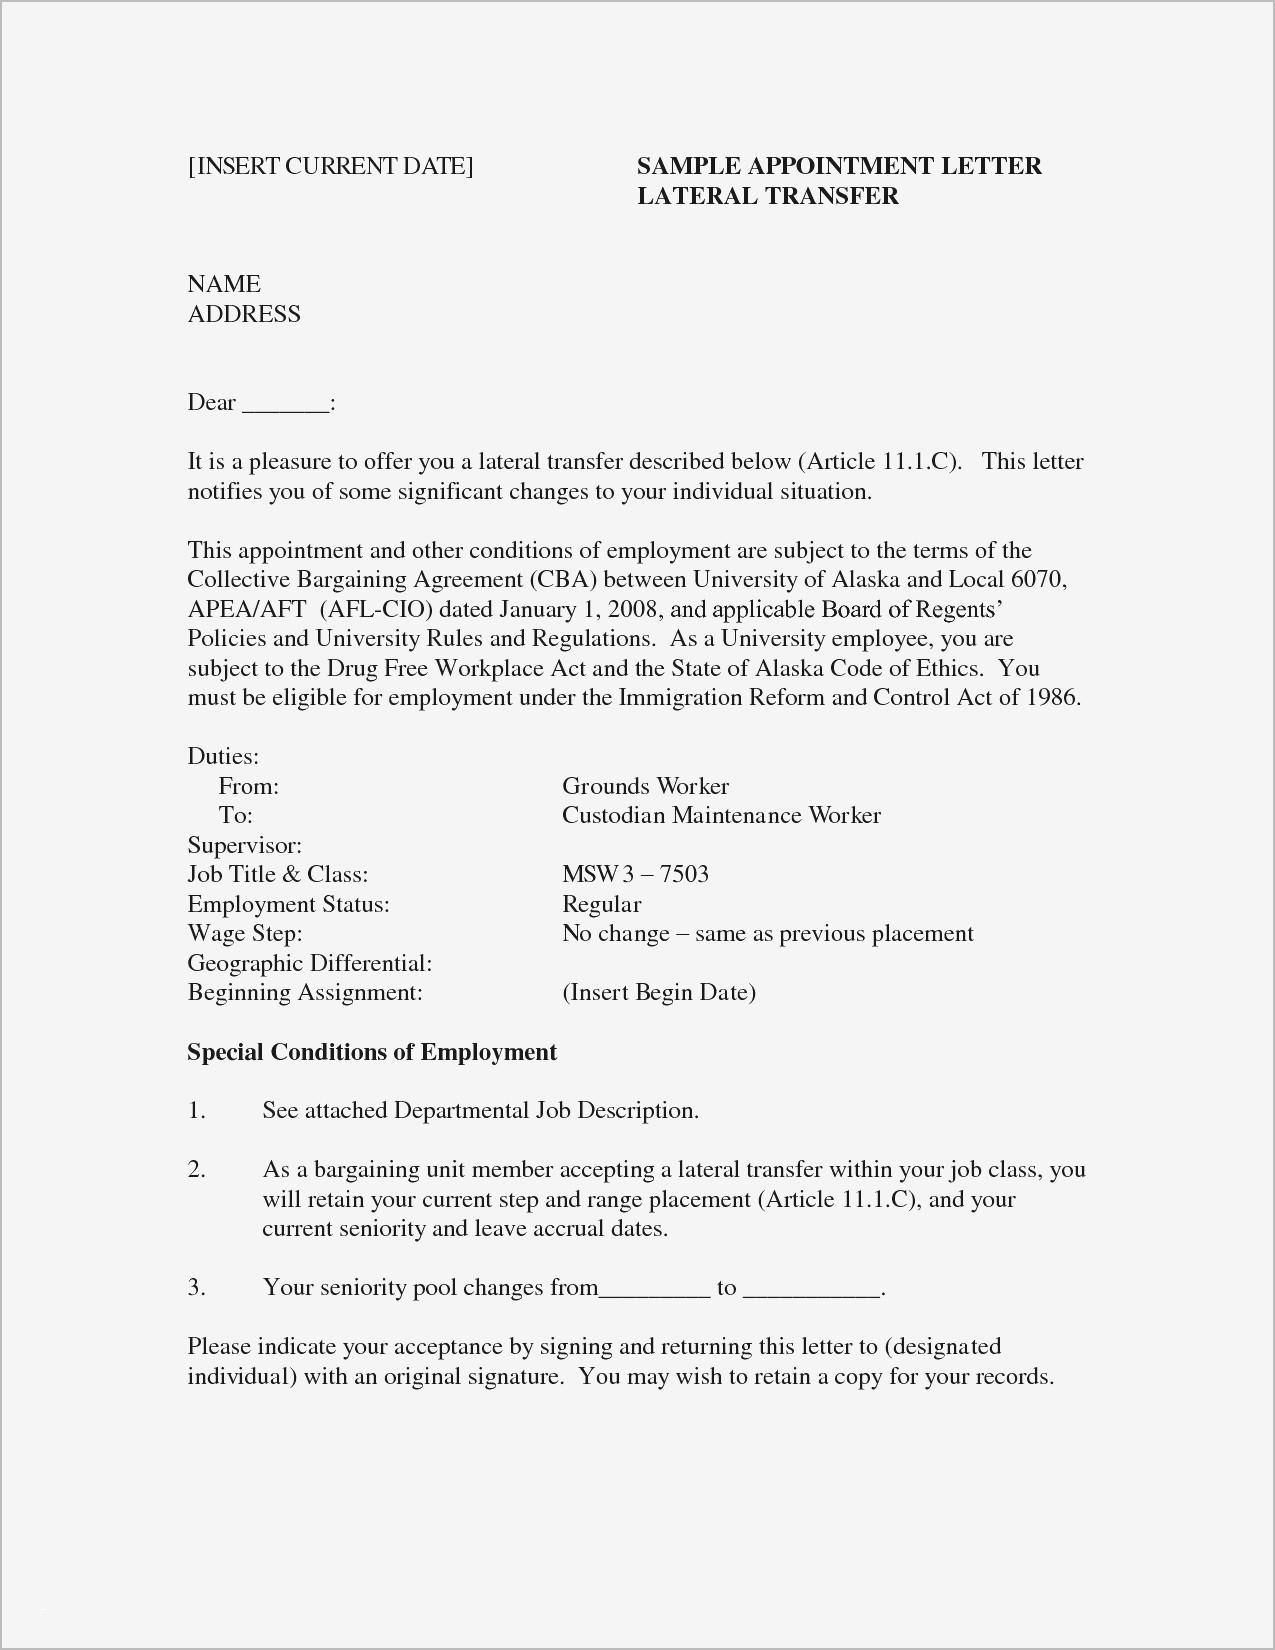 resume builder service example-Best Rated Resume Writing Services New Resume Review Services Best Fresh Resume 0d Resume For Substitute 14-j